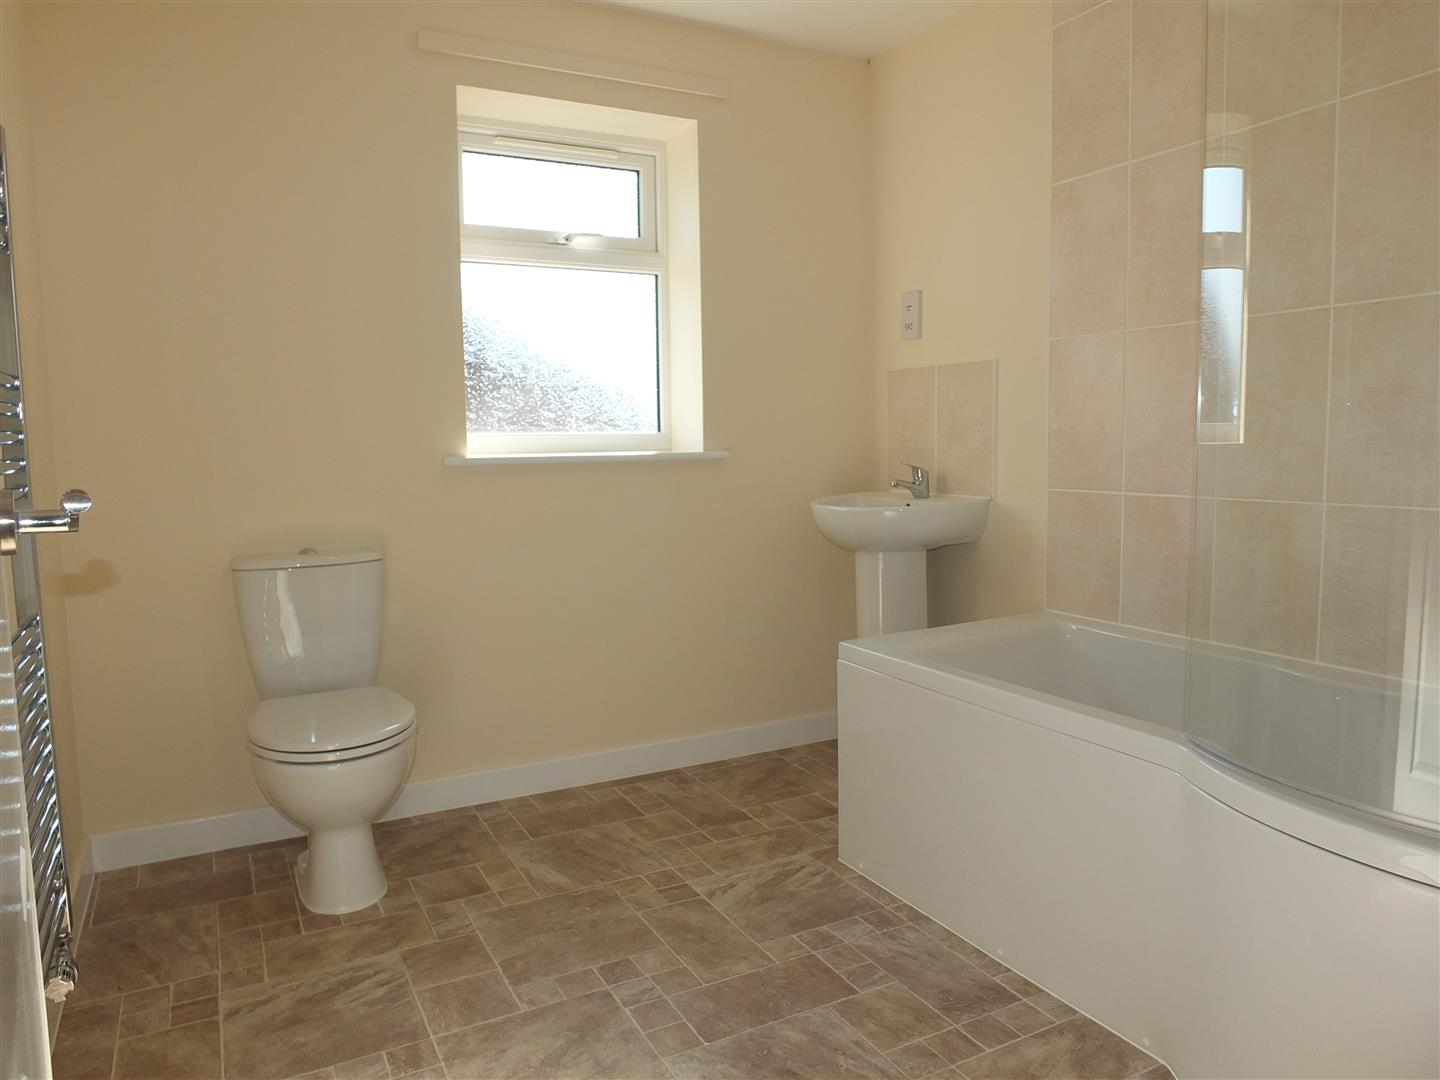 2 bed house to rent in Little London, Long Sutton Spalding 8